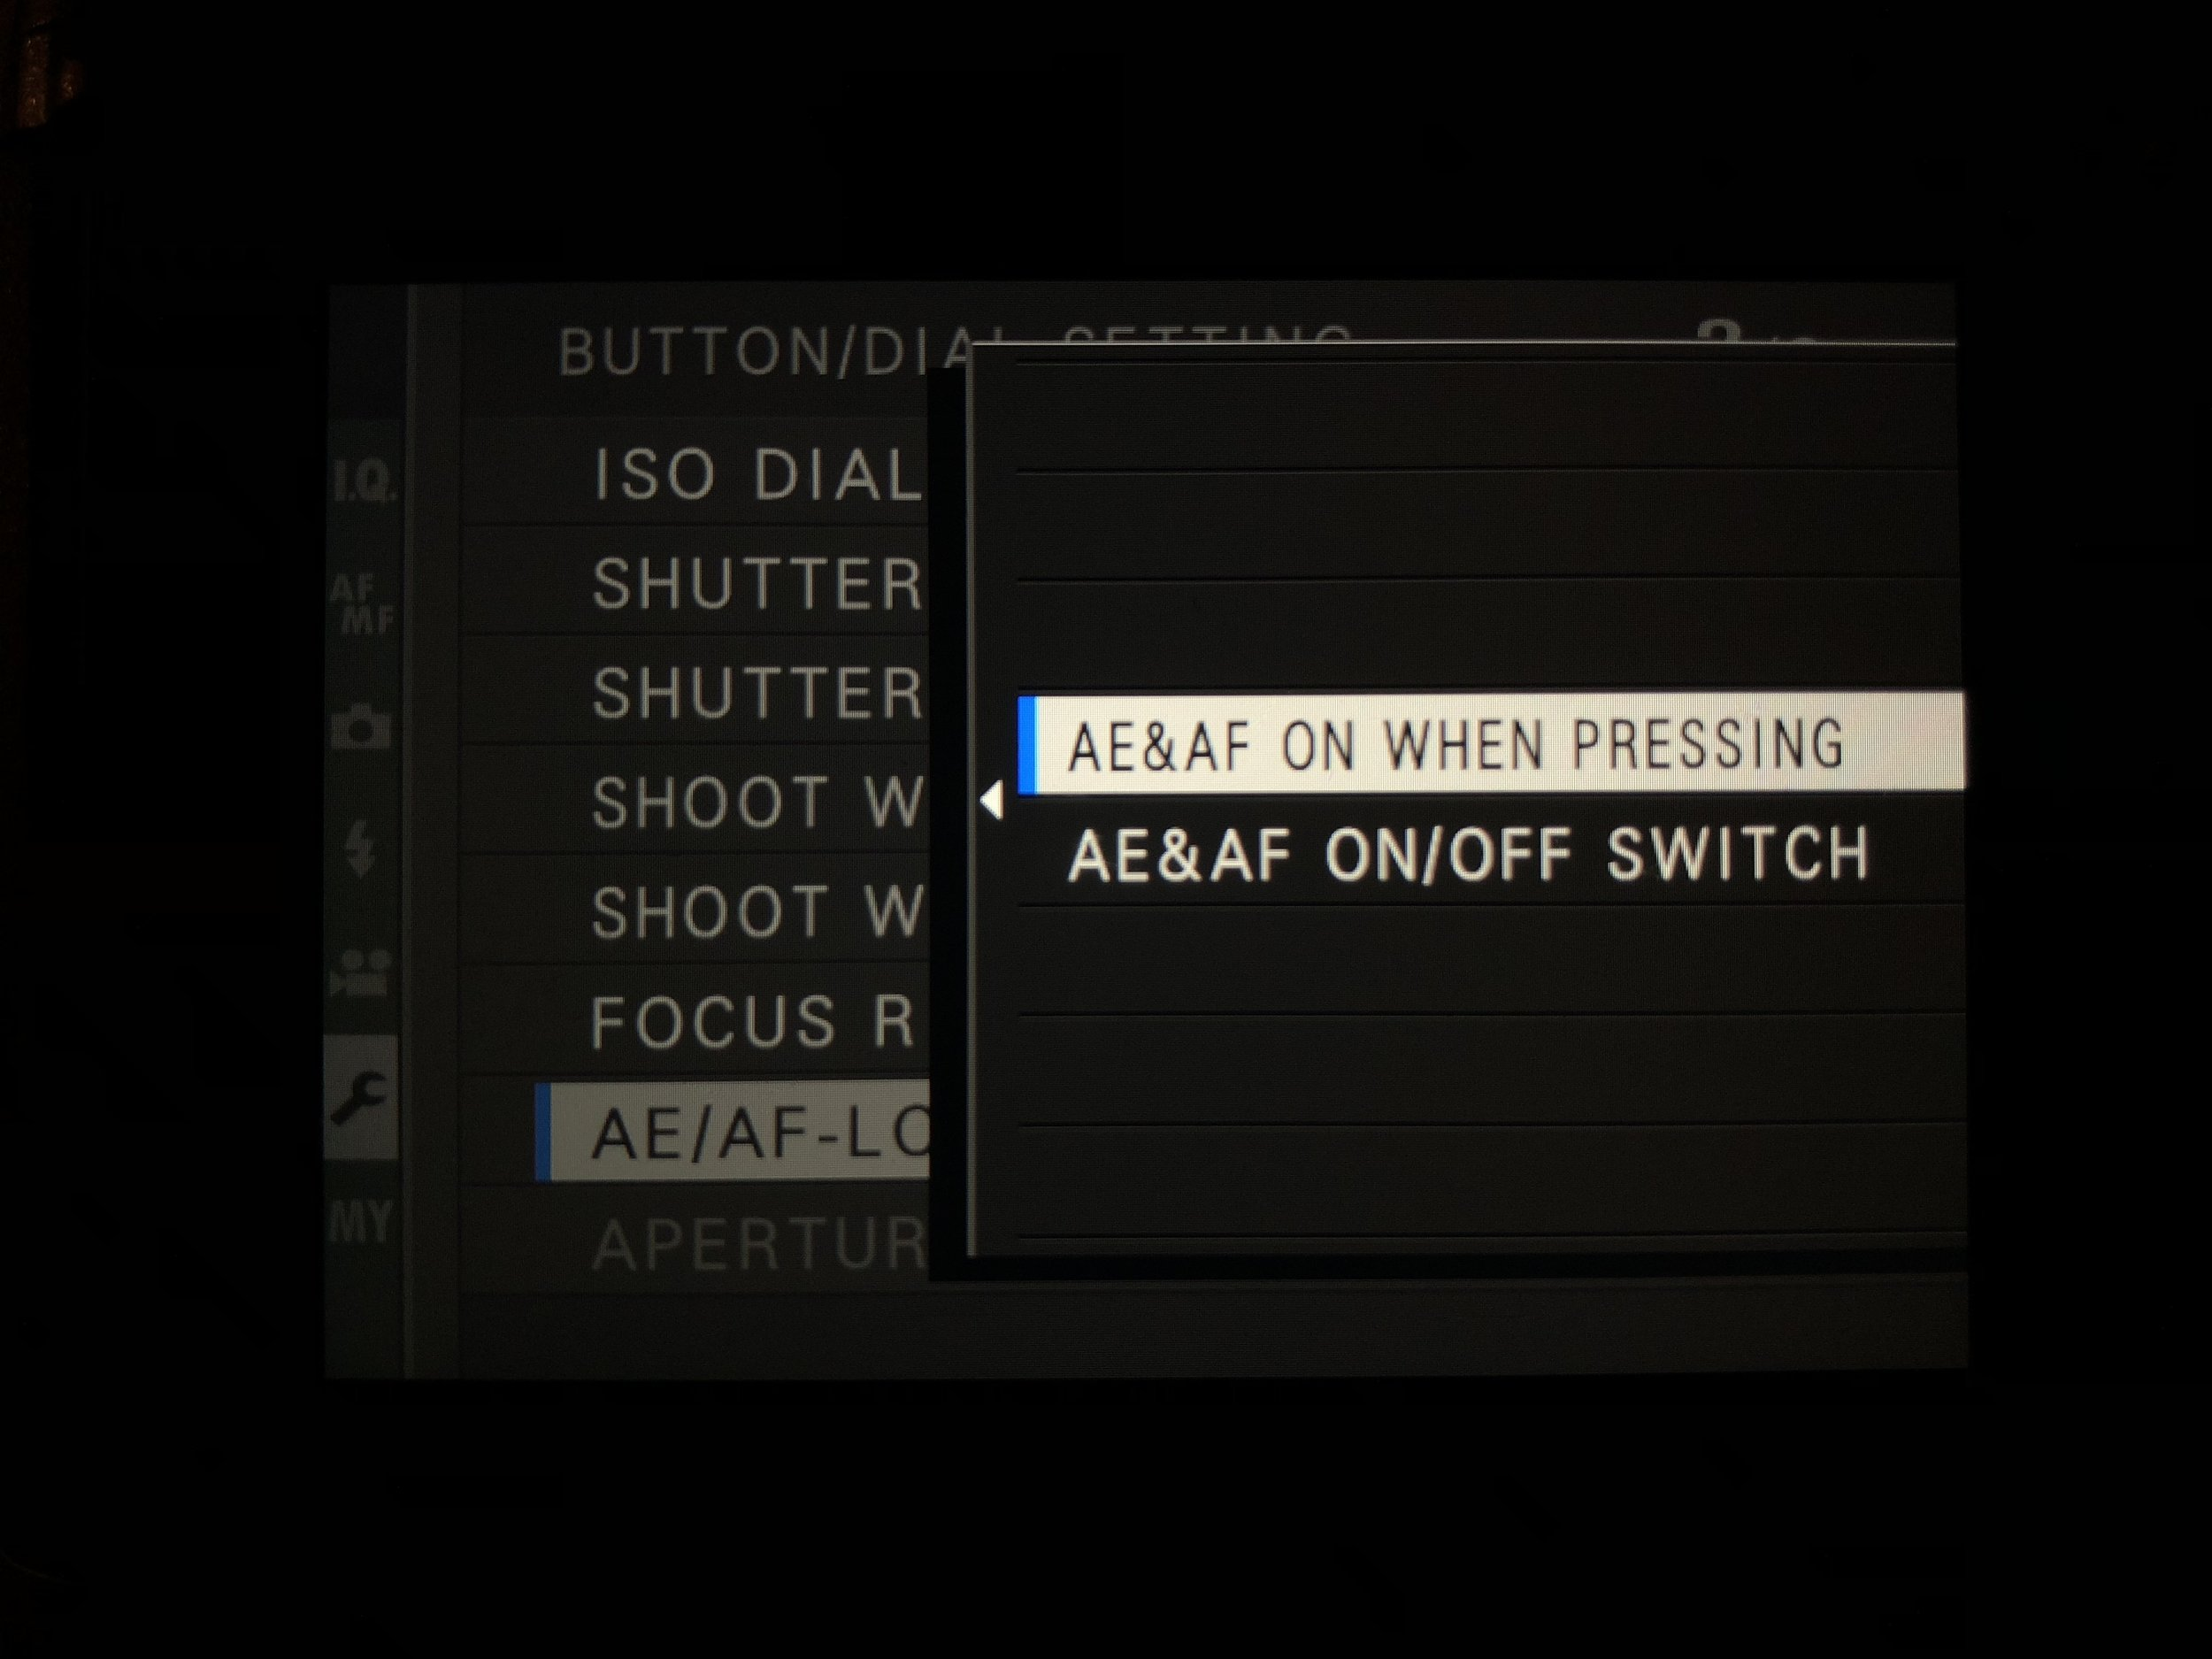 Set AE&AF ON to P - Set Up>Button/Dial Setting>AE/AF Lock Mode to P